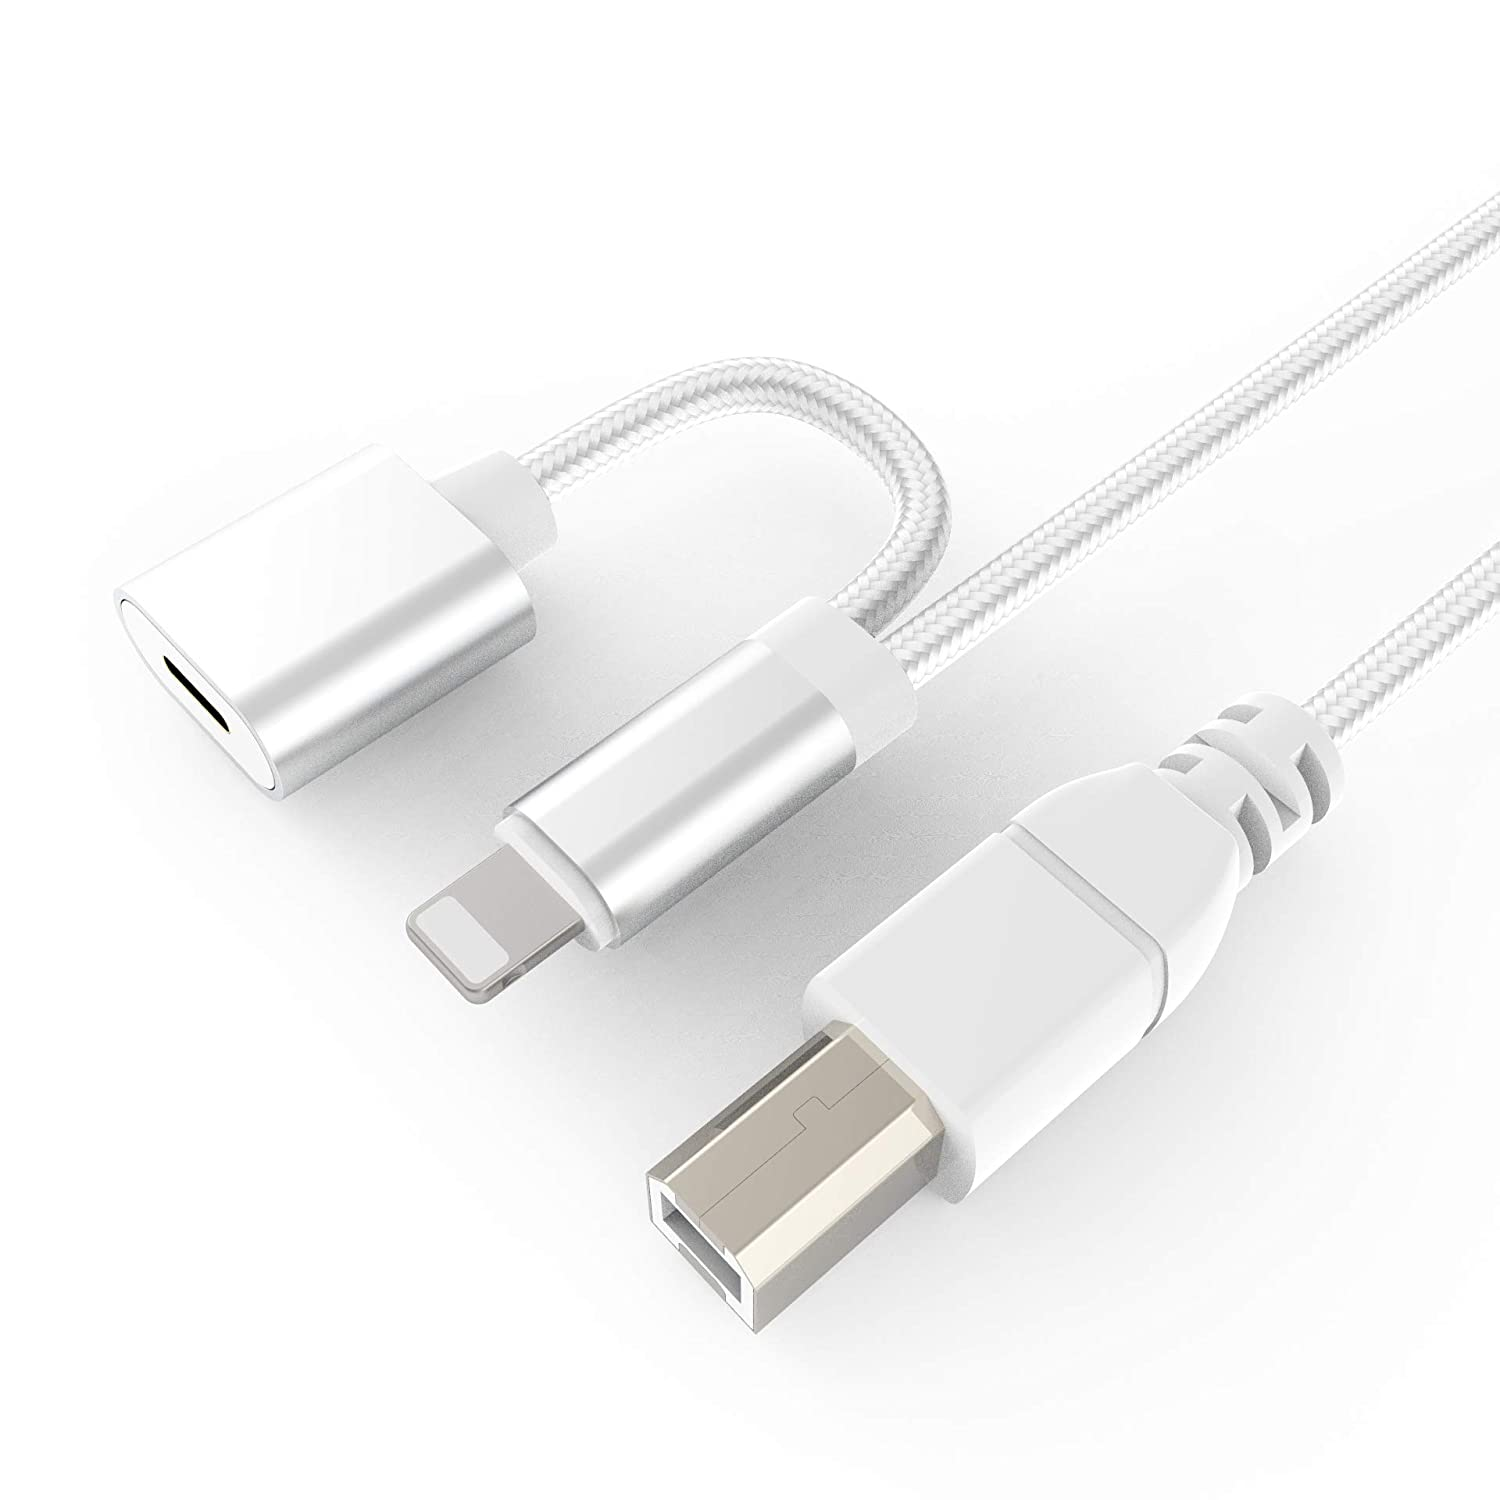 MIDI Cable for iPad to Piano/Midi Keyboard/Audio DAC/Electronic Instrument/USB Microphone, USB 2.0 Type-B to MIDI OTG Cord with Charger Compatible with i-Pad/i-Phone/i-Pod -3.3 FT(White)